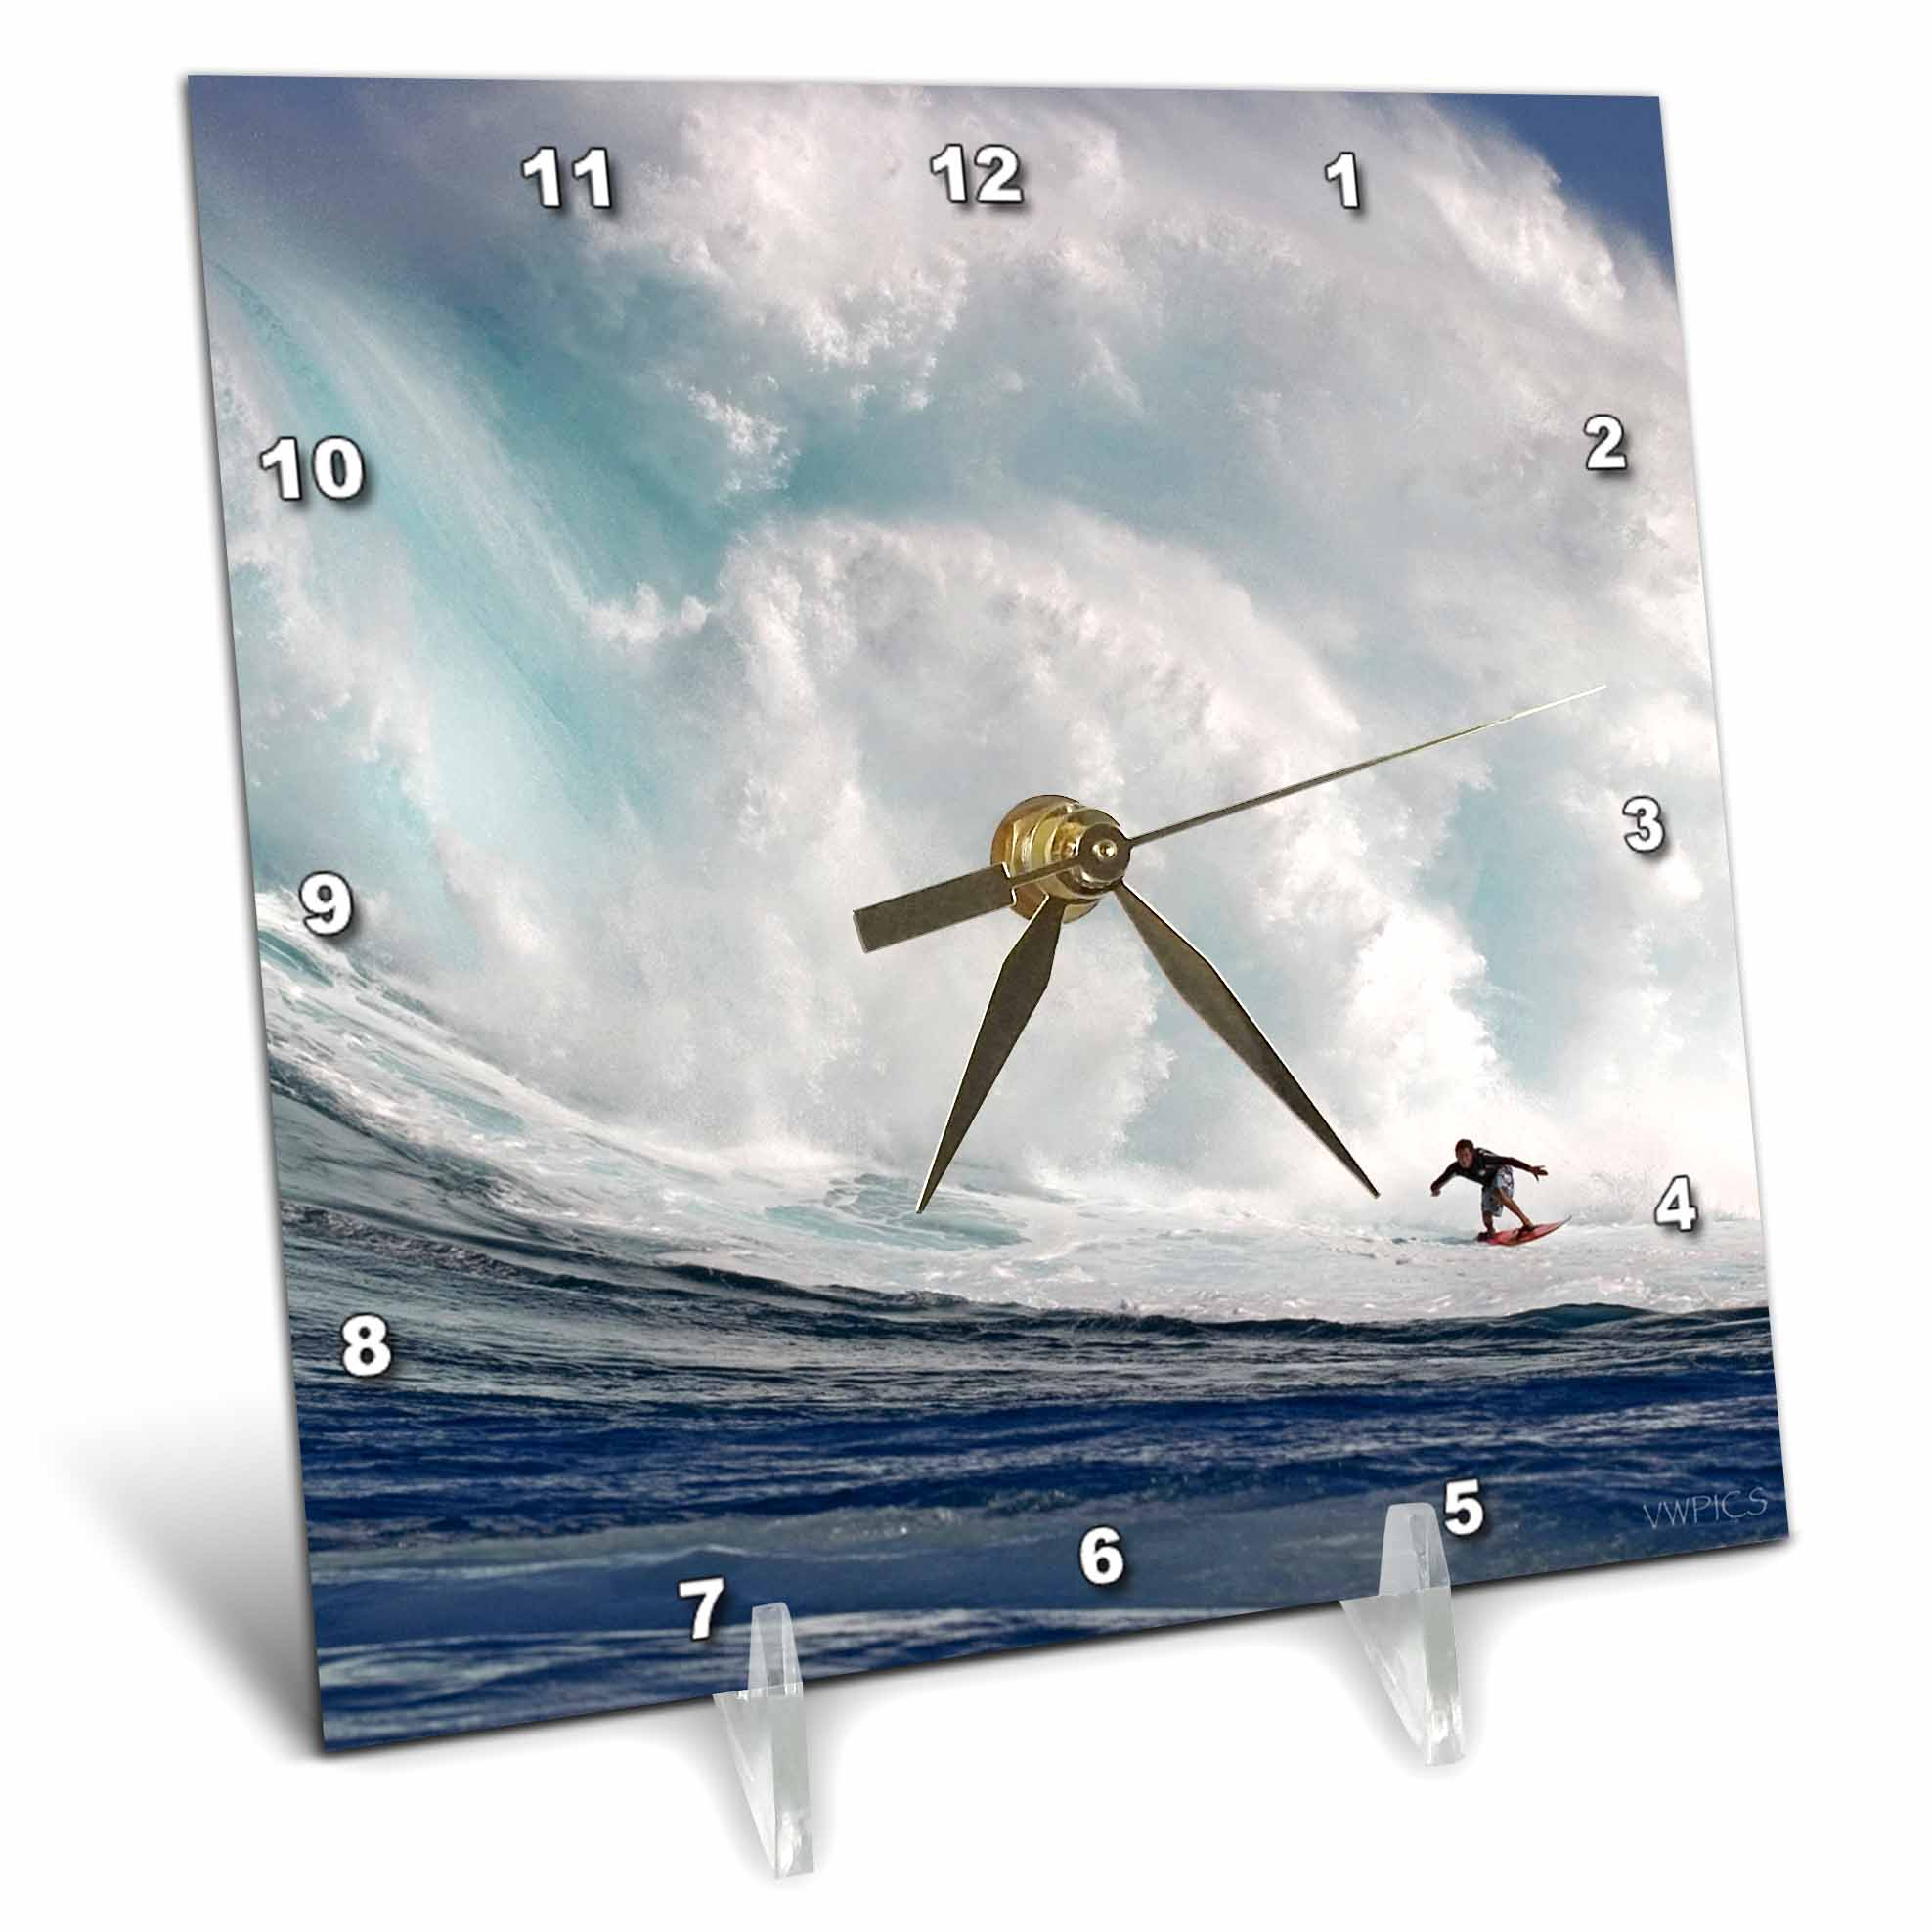 3dRose A tow-in surfer drops to the curl of Hawaiis big surf at Peahi (Jaws) off Maui, Desk Clock, 6 by 6-inch by 3dRose